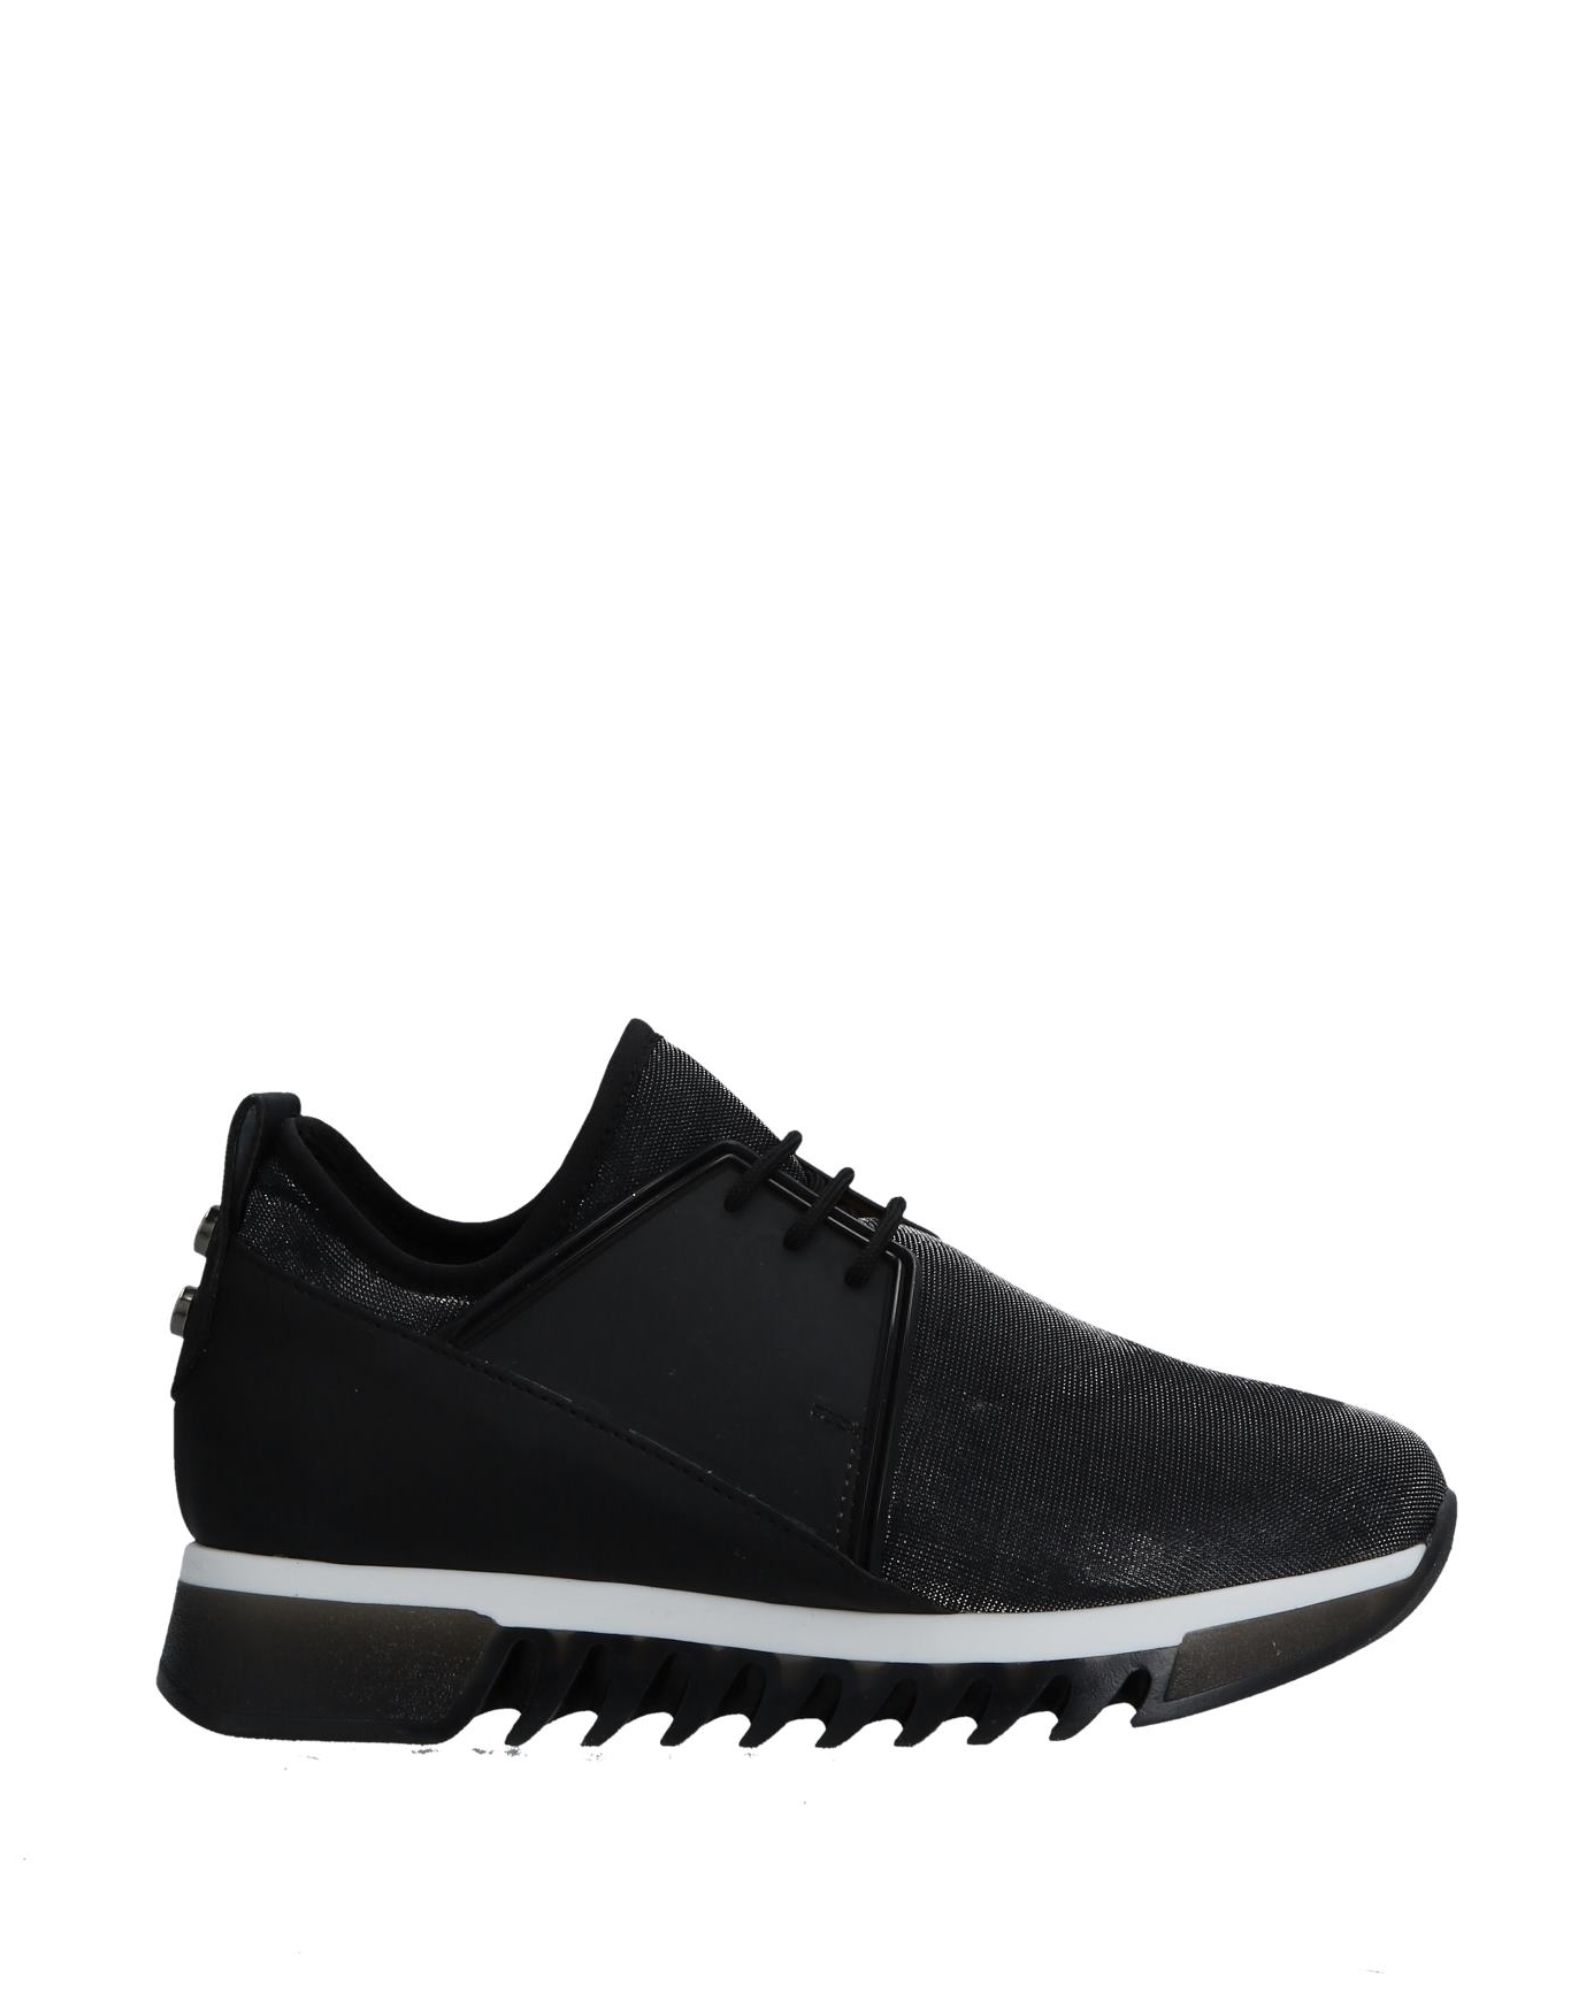 ALEXANDER SMITH Sneakers in Lead